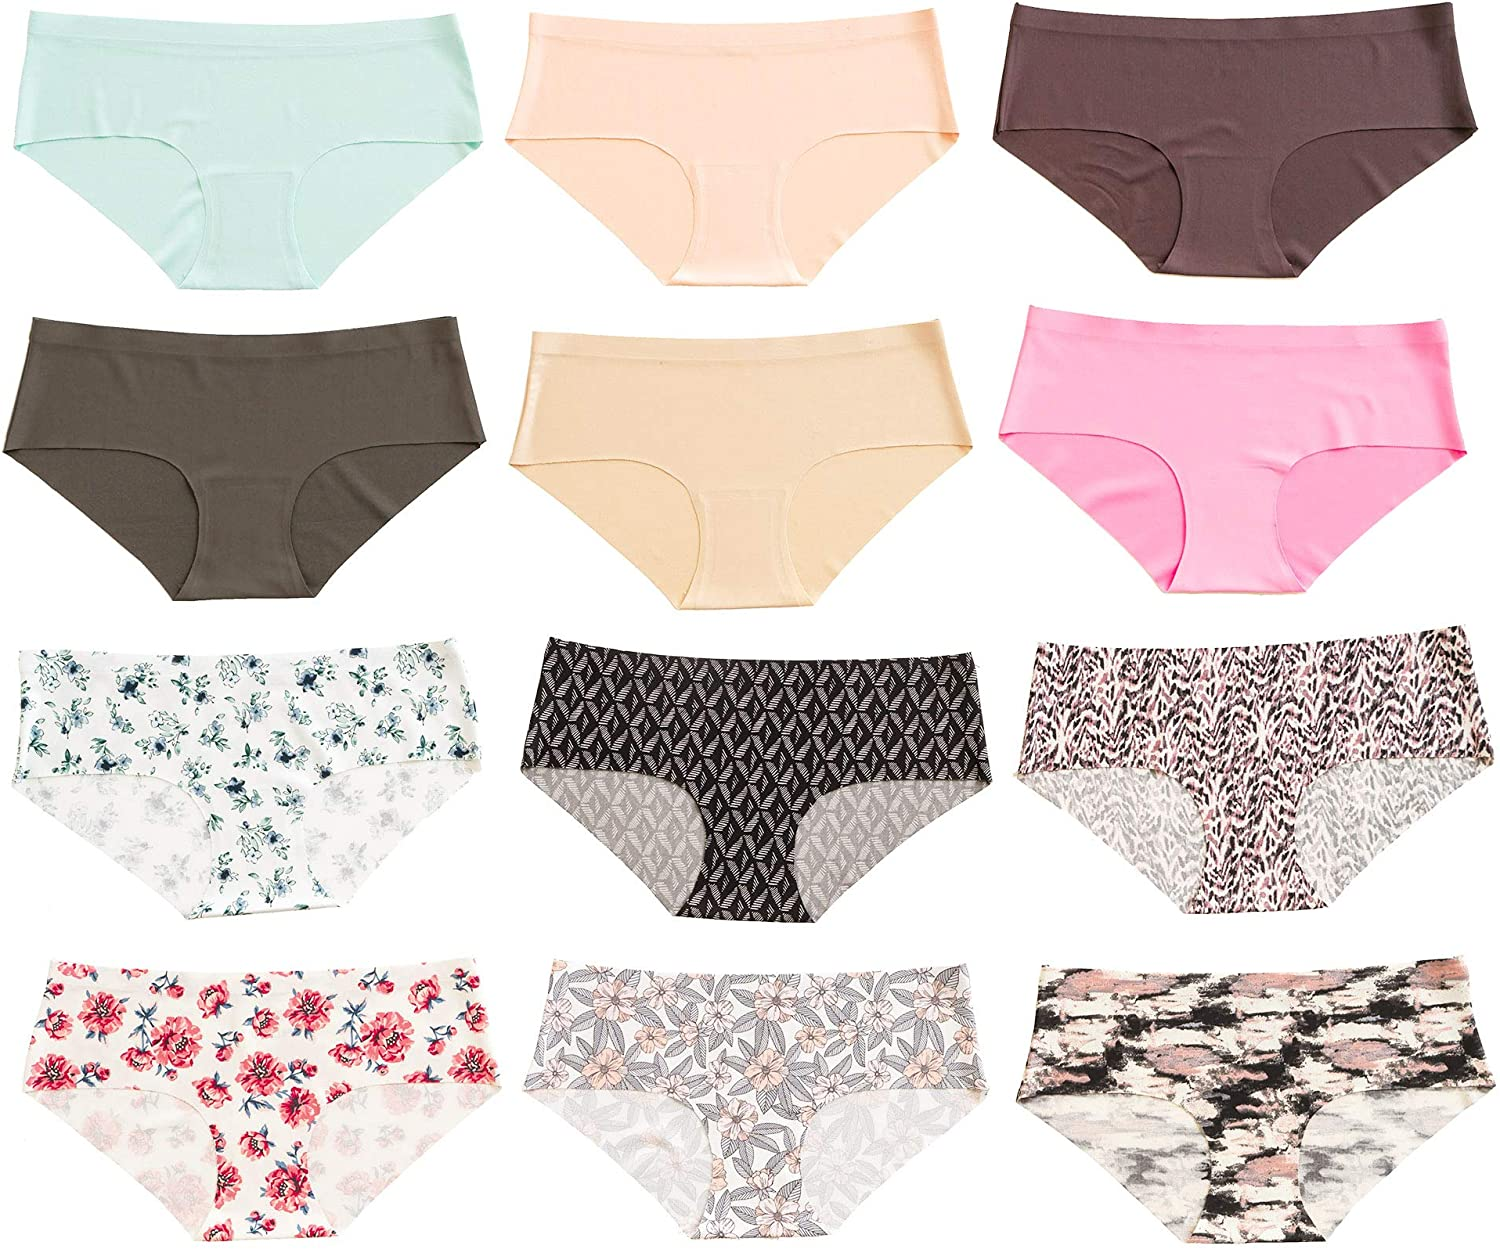 Alyce Intimates Women's Laser Cut Bikini 12 Pack, Assorted Colors